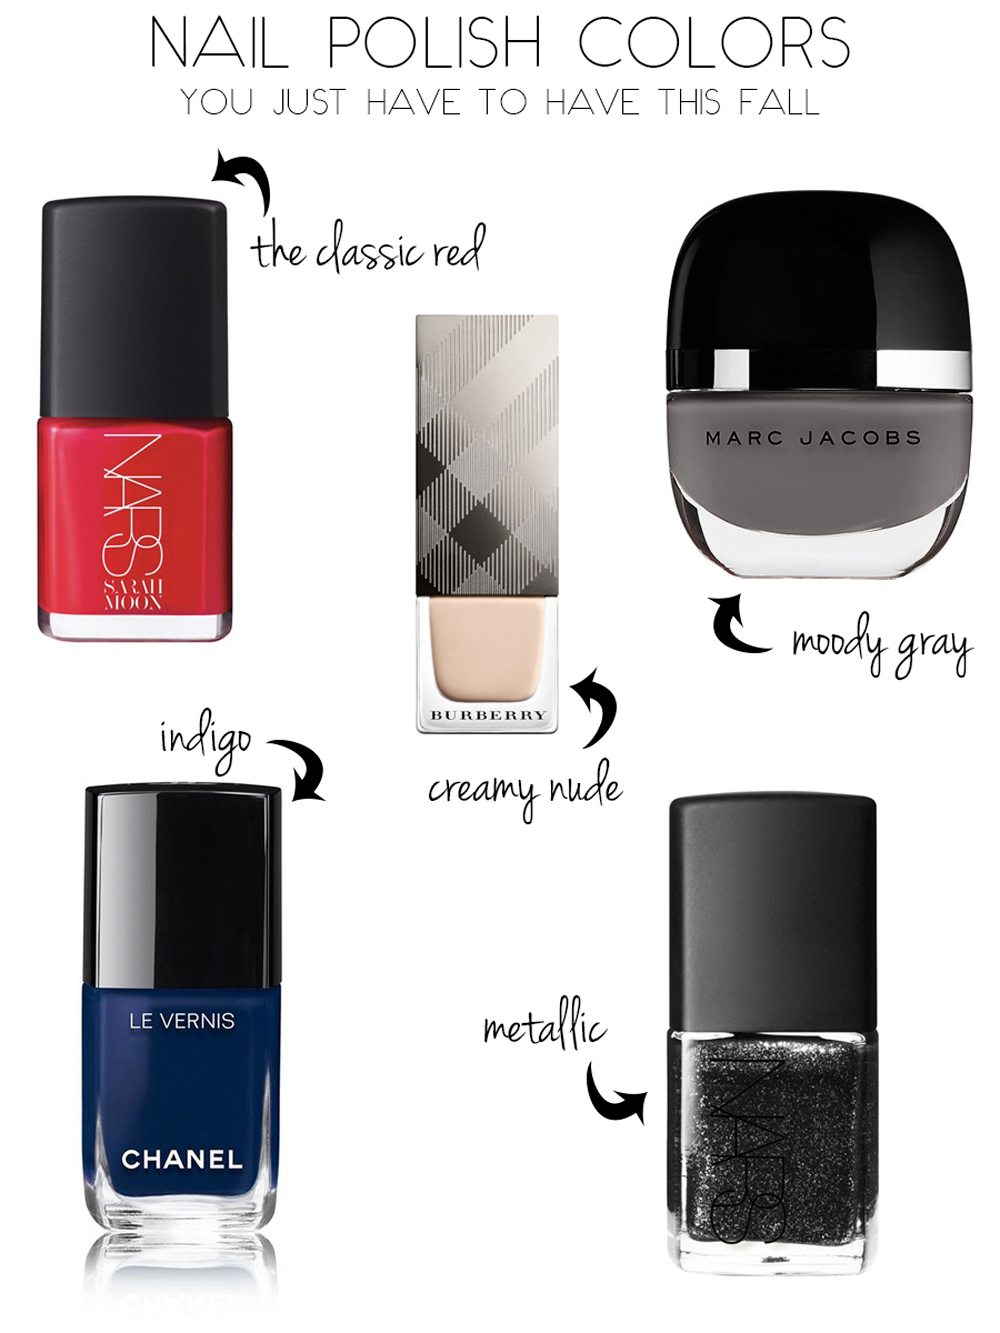 nail-polish-colors-fall-2016.jpg?resize=1000,1333&ssl=1